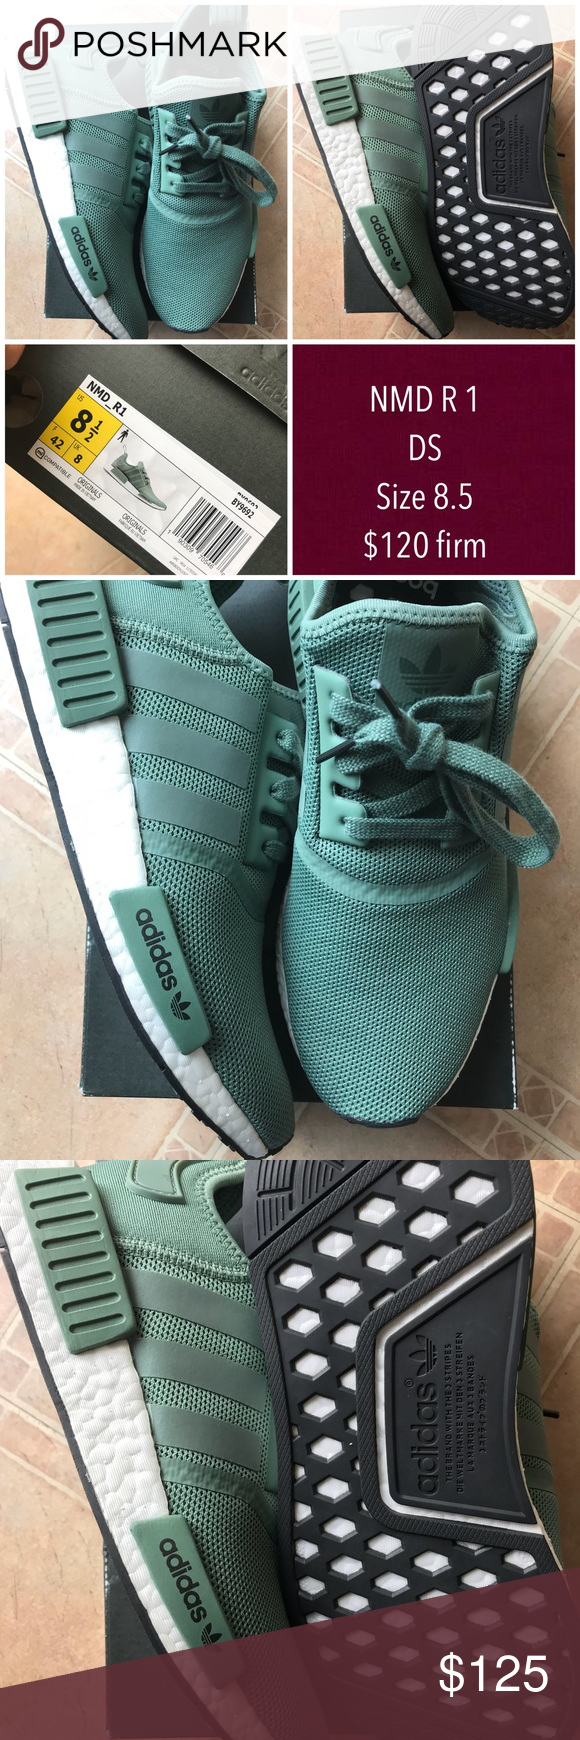 56cb9f2b3569e NMD R1 ( NWT ) Army green olive NMD R1. Dead Stock ( never worn ) NWT size  8.5 adidas Shoes Athletic Shoes